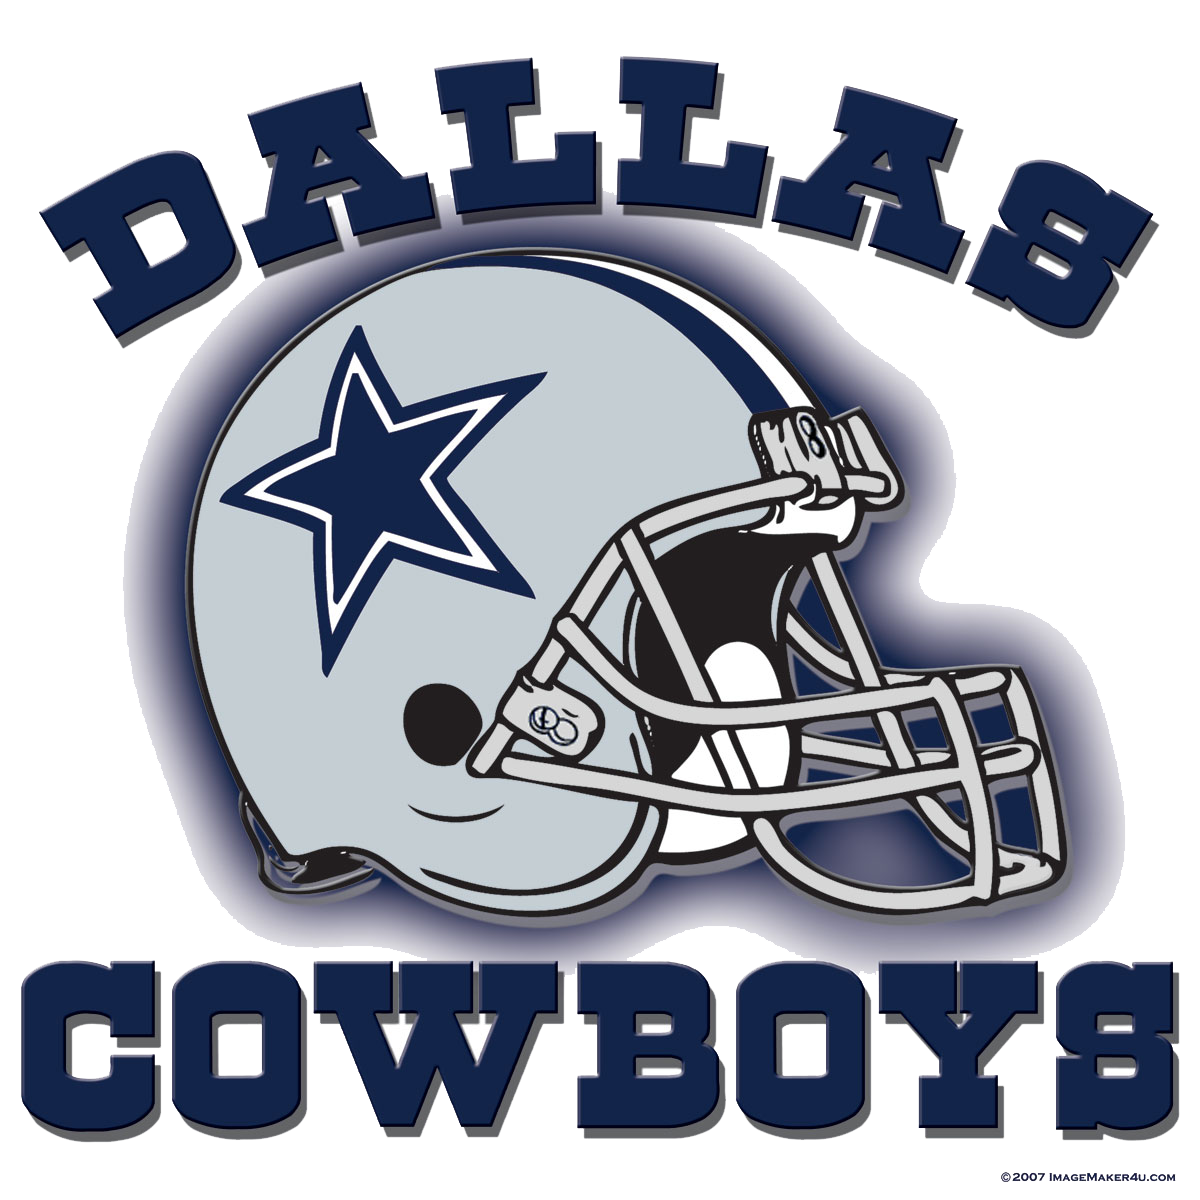 Dallas cowboys logo png. Transparent images all clipart